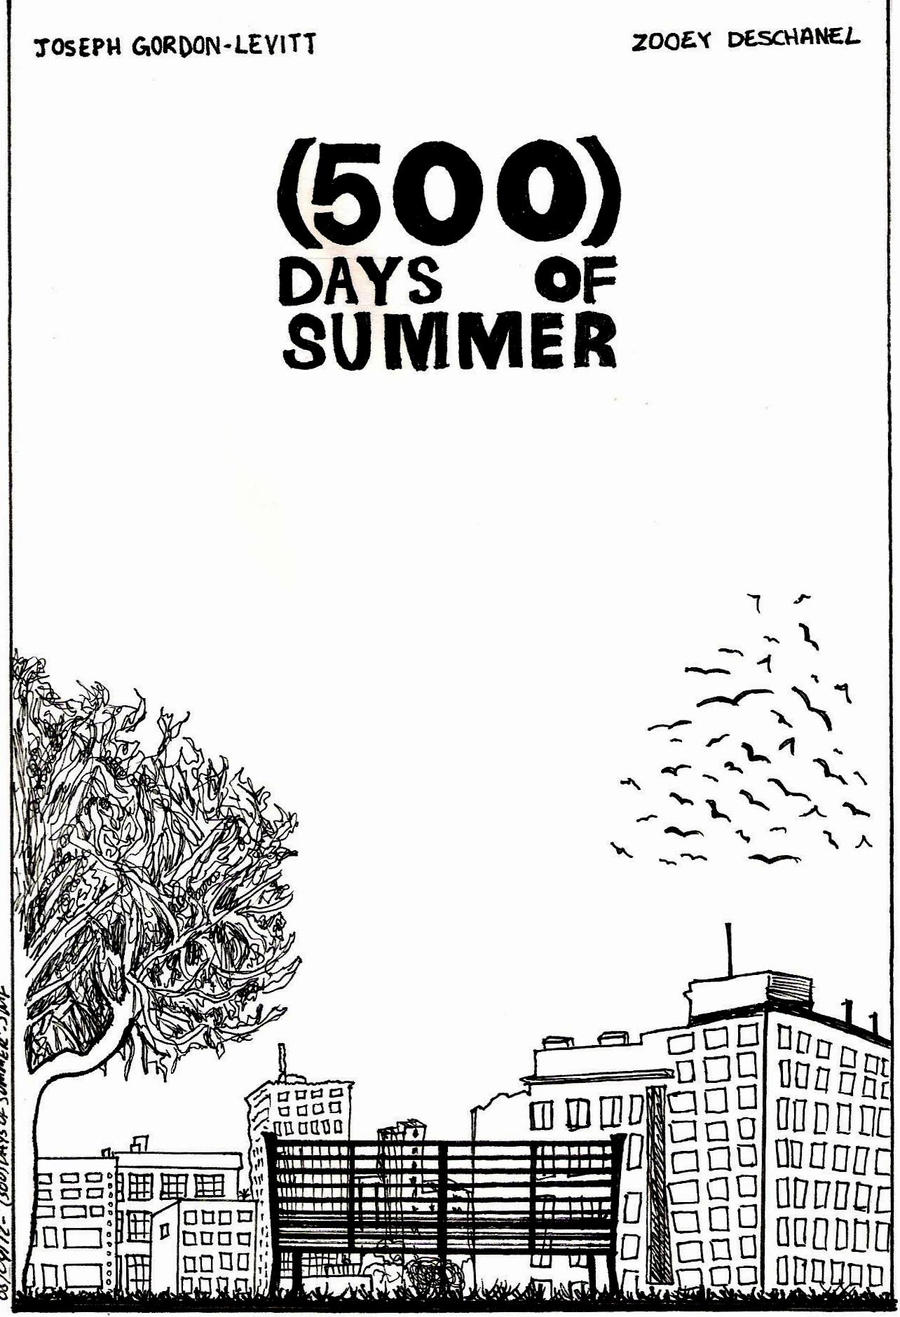 500 days of summer poster by intothewild142 on deviantart for Architecture drawing 500 days of summer